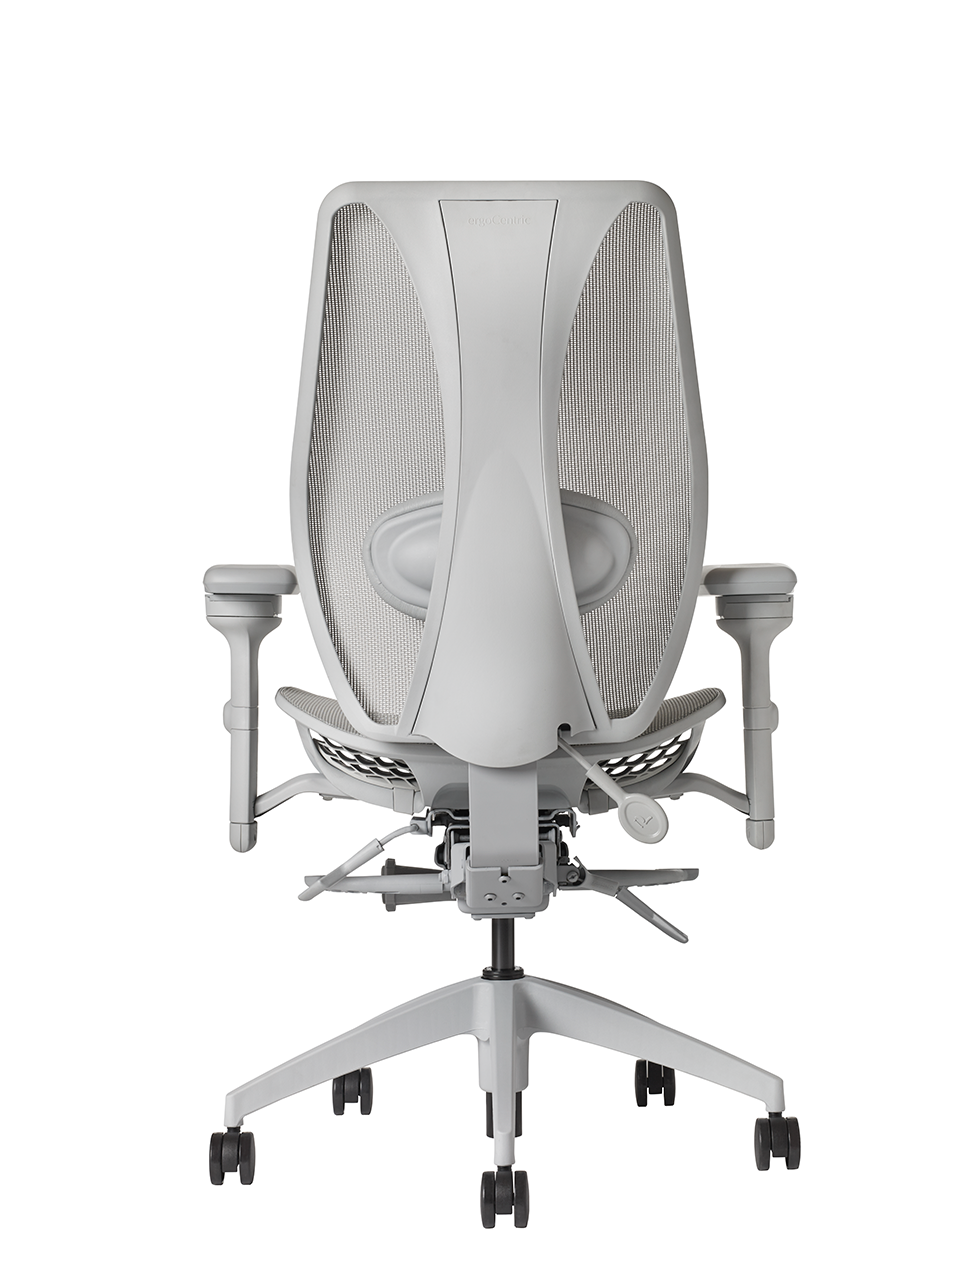 24 Hour Office Chair tCentric Hybrid Ergonomic Chair from